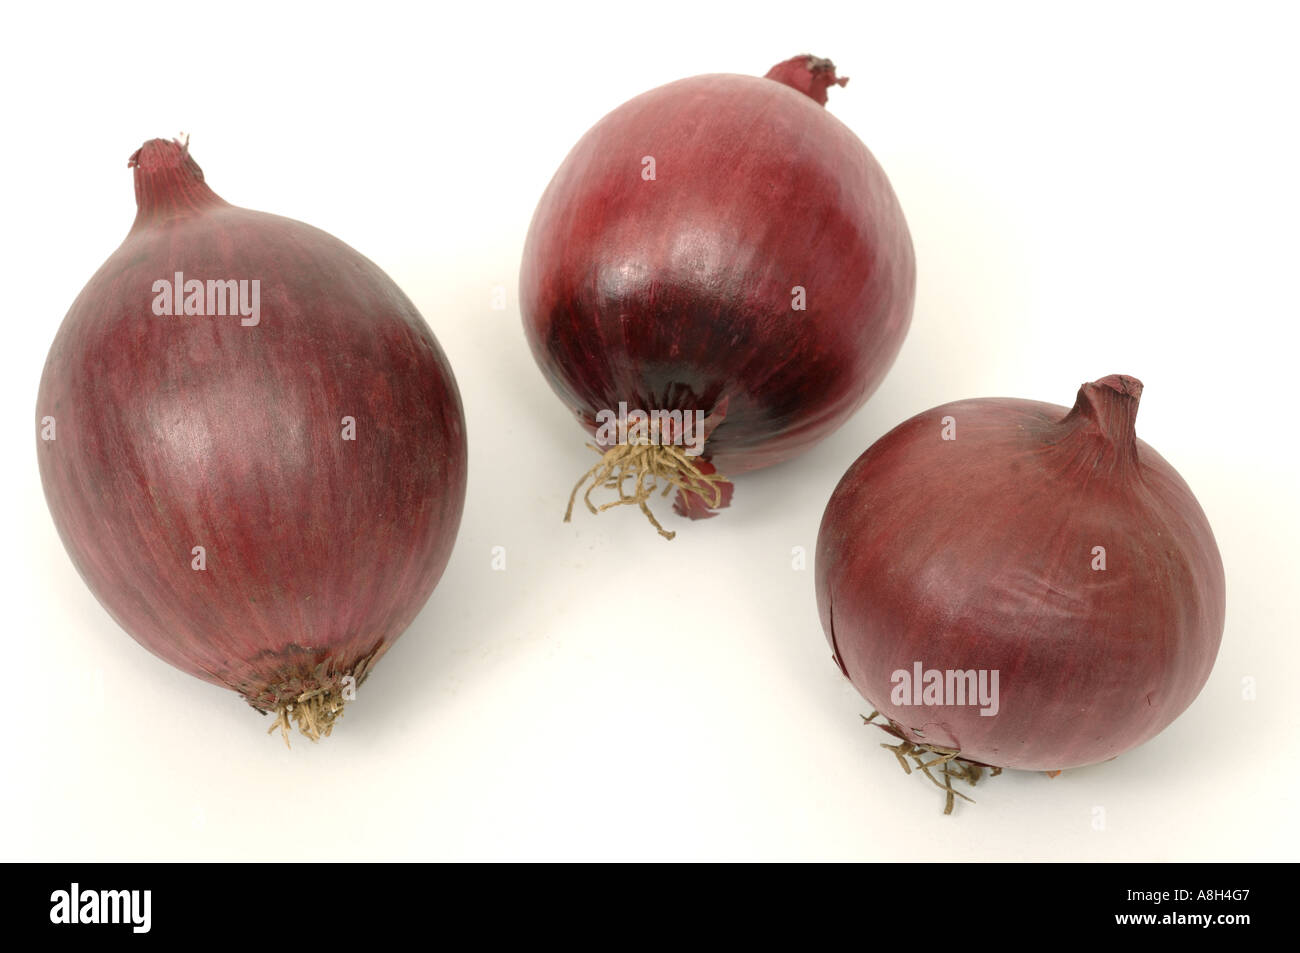 Root vegetable produce typical supermarket bought red Spanish onions - Stock Image